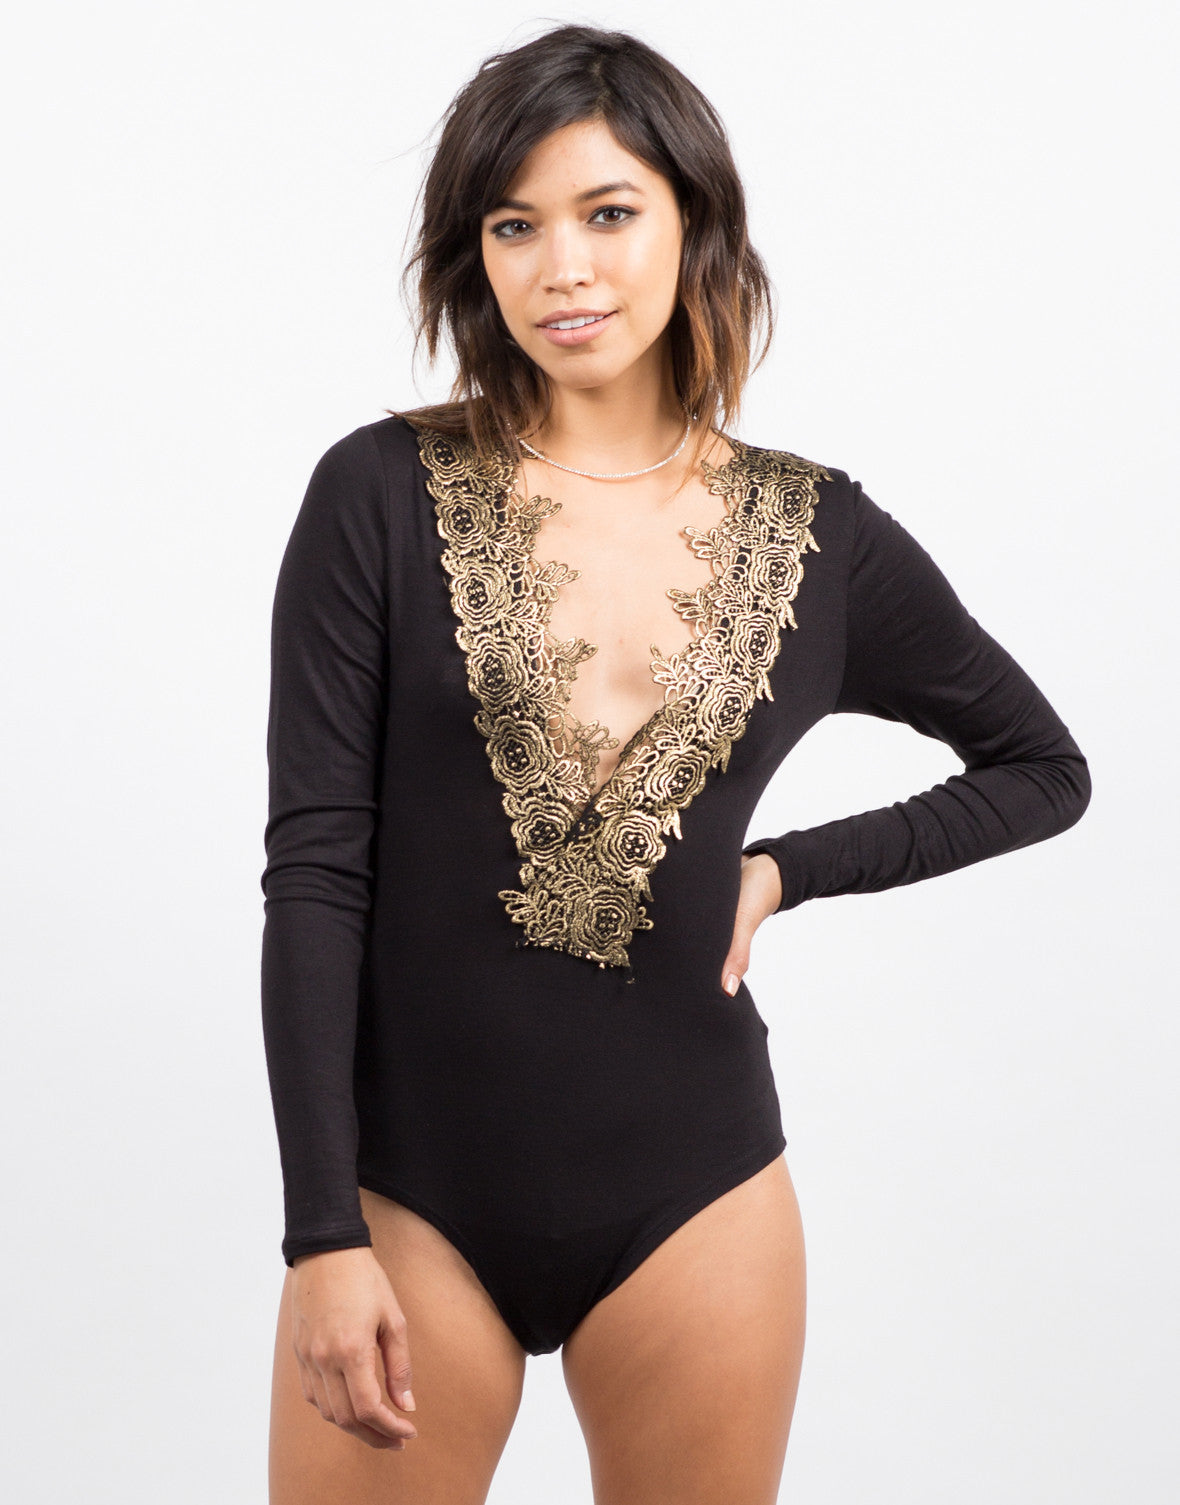 Front View of Golden Rose Bodysuit